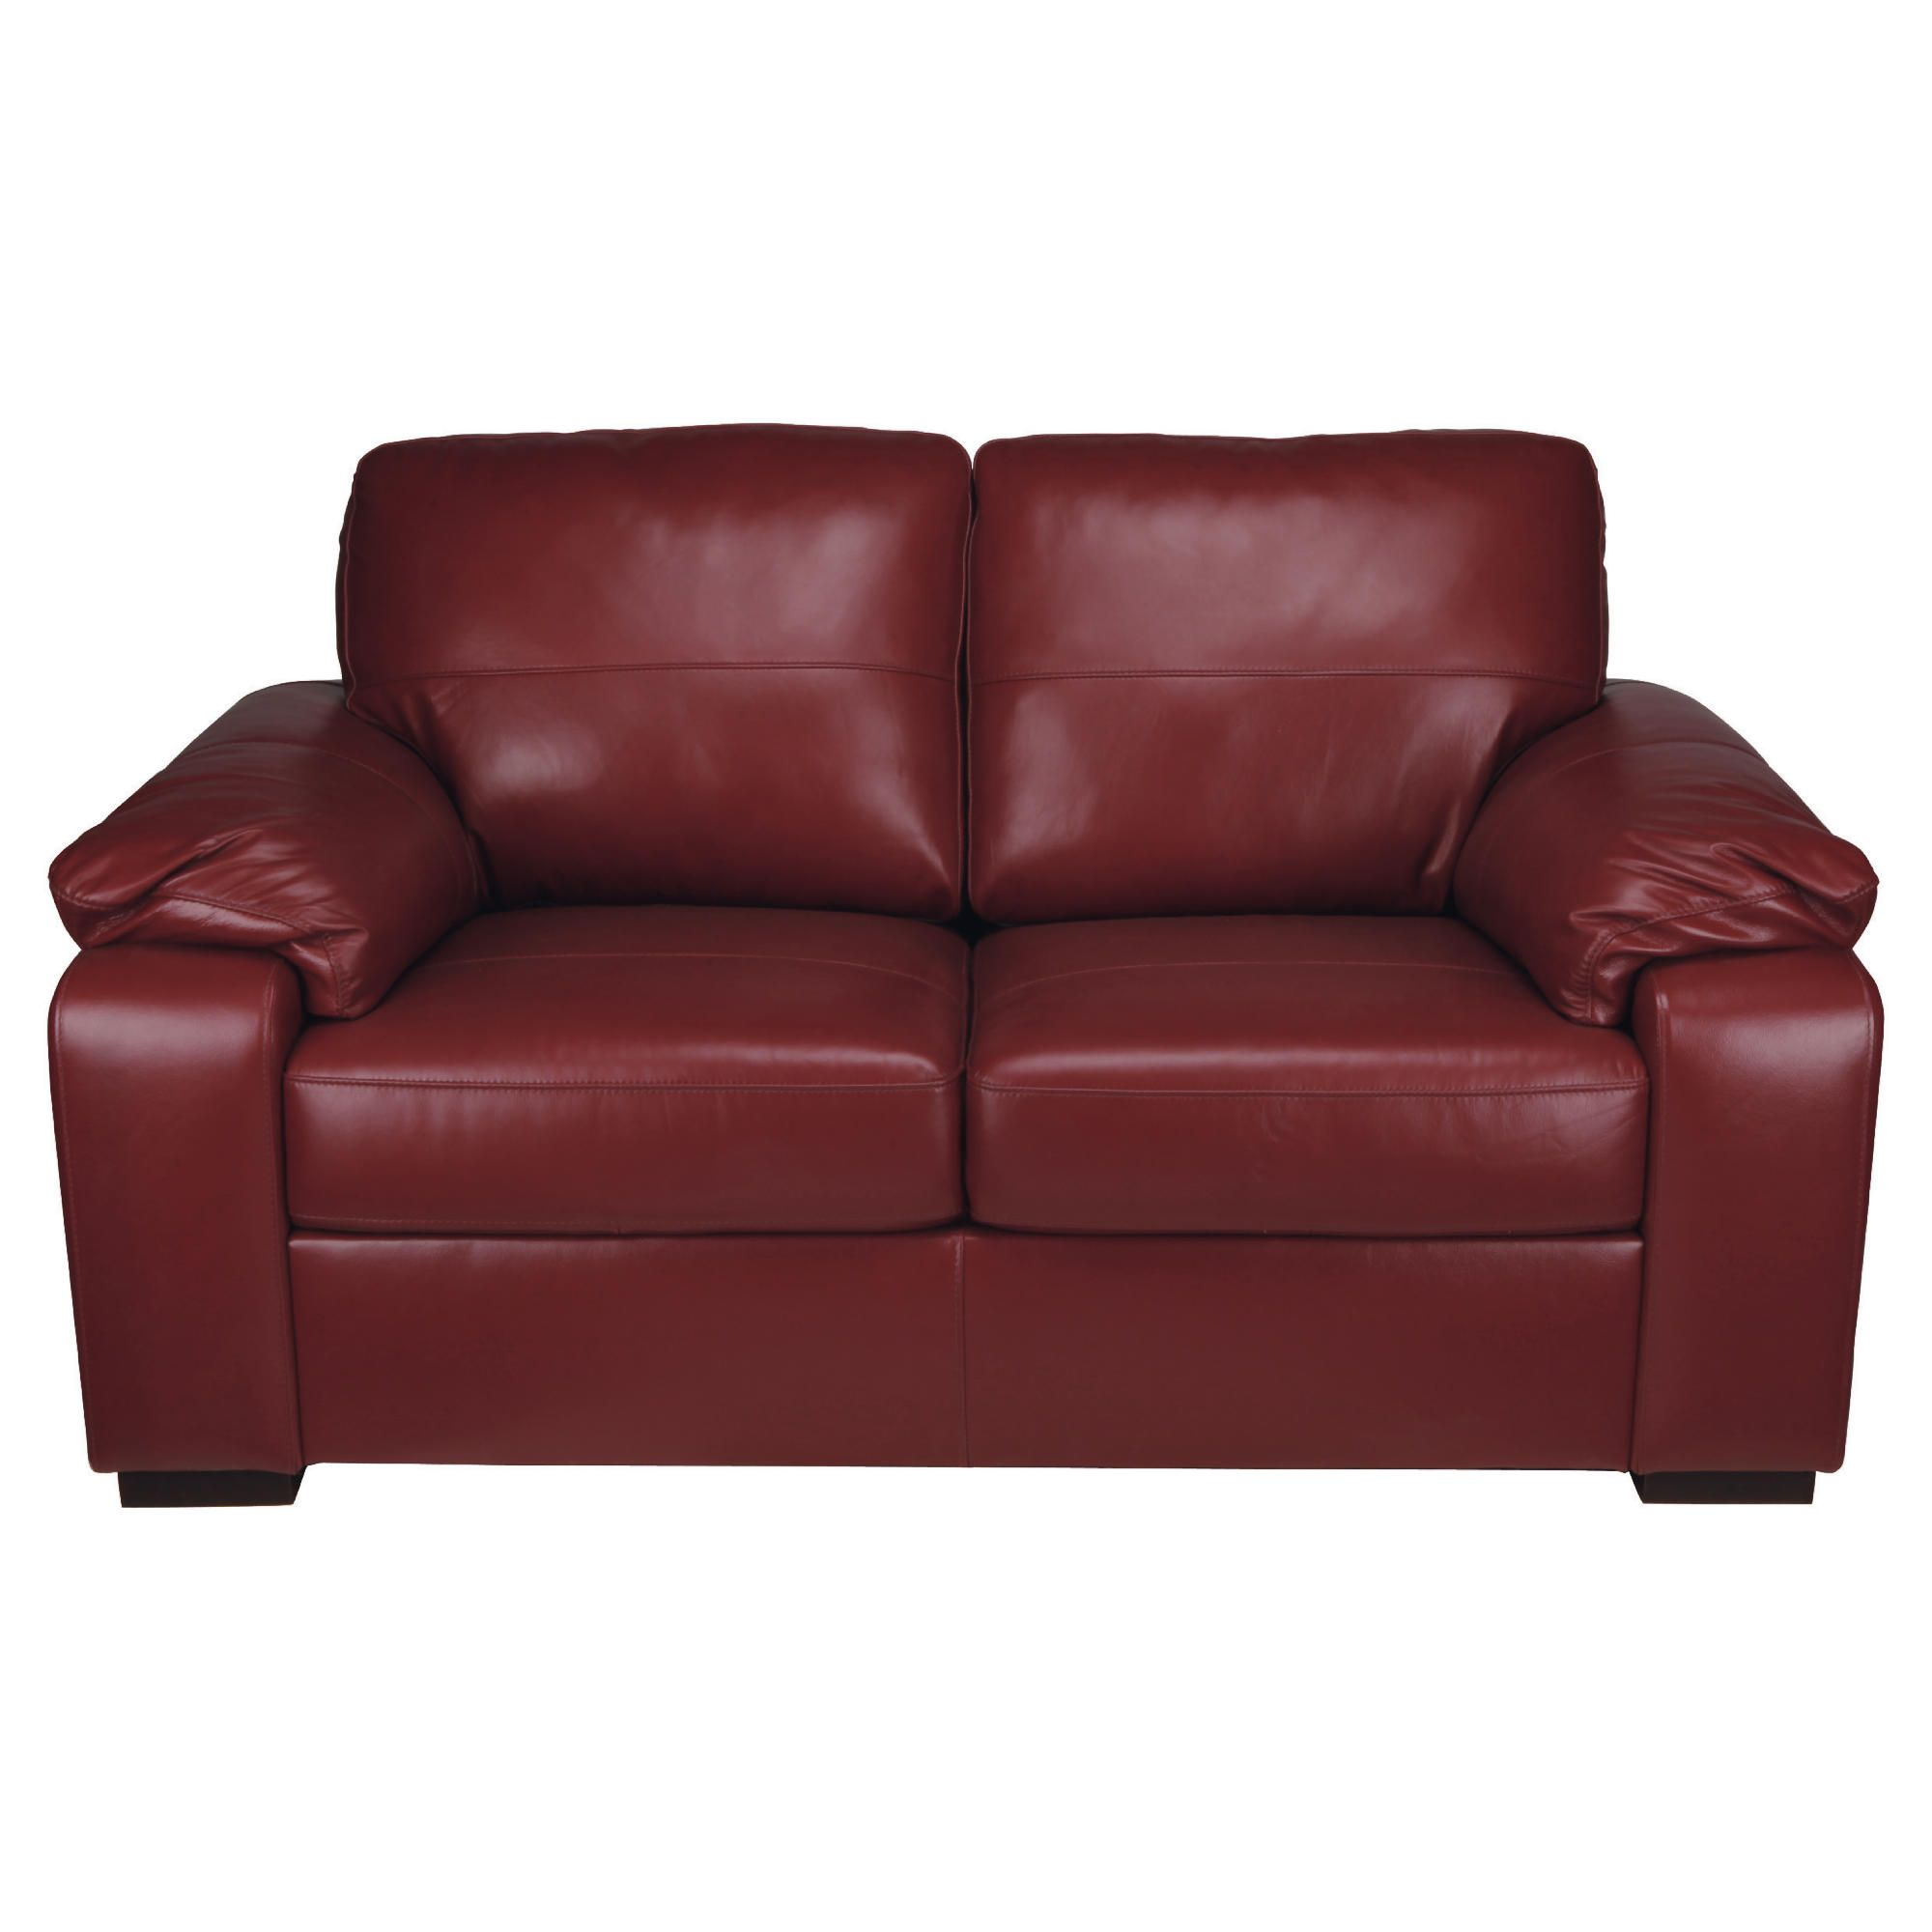 ashmore small leather sofa red this small ashmore sofa offers